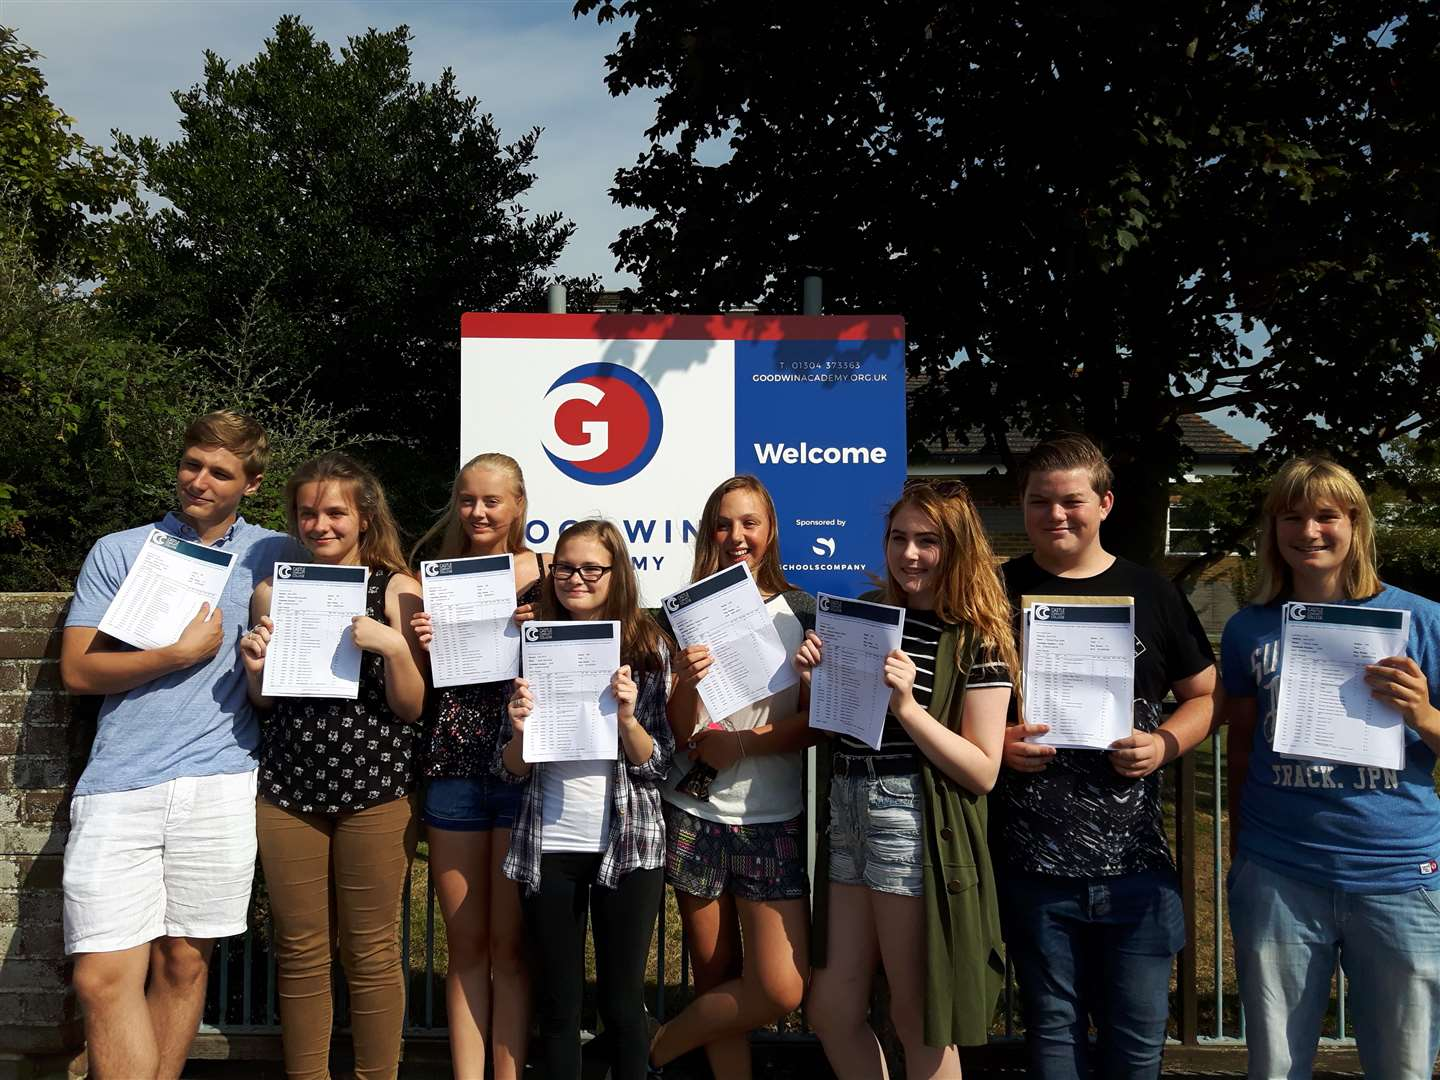 Goodwin Academy pupils celebrating their results